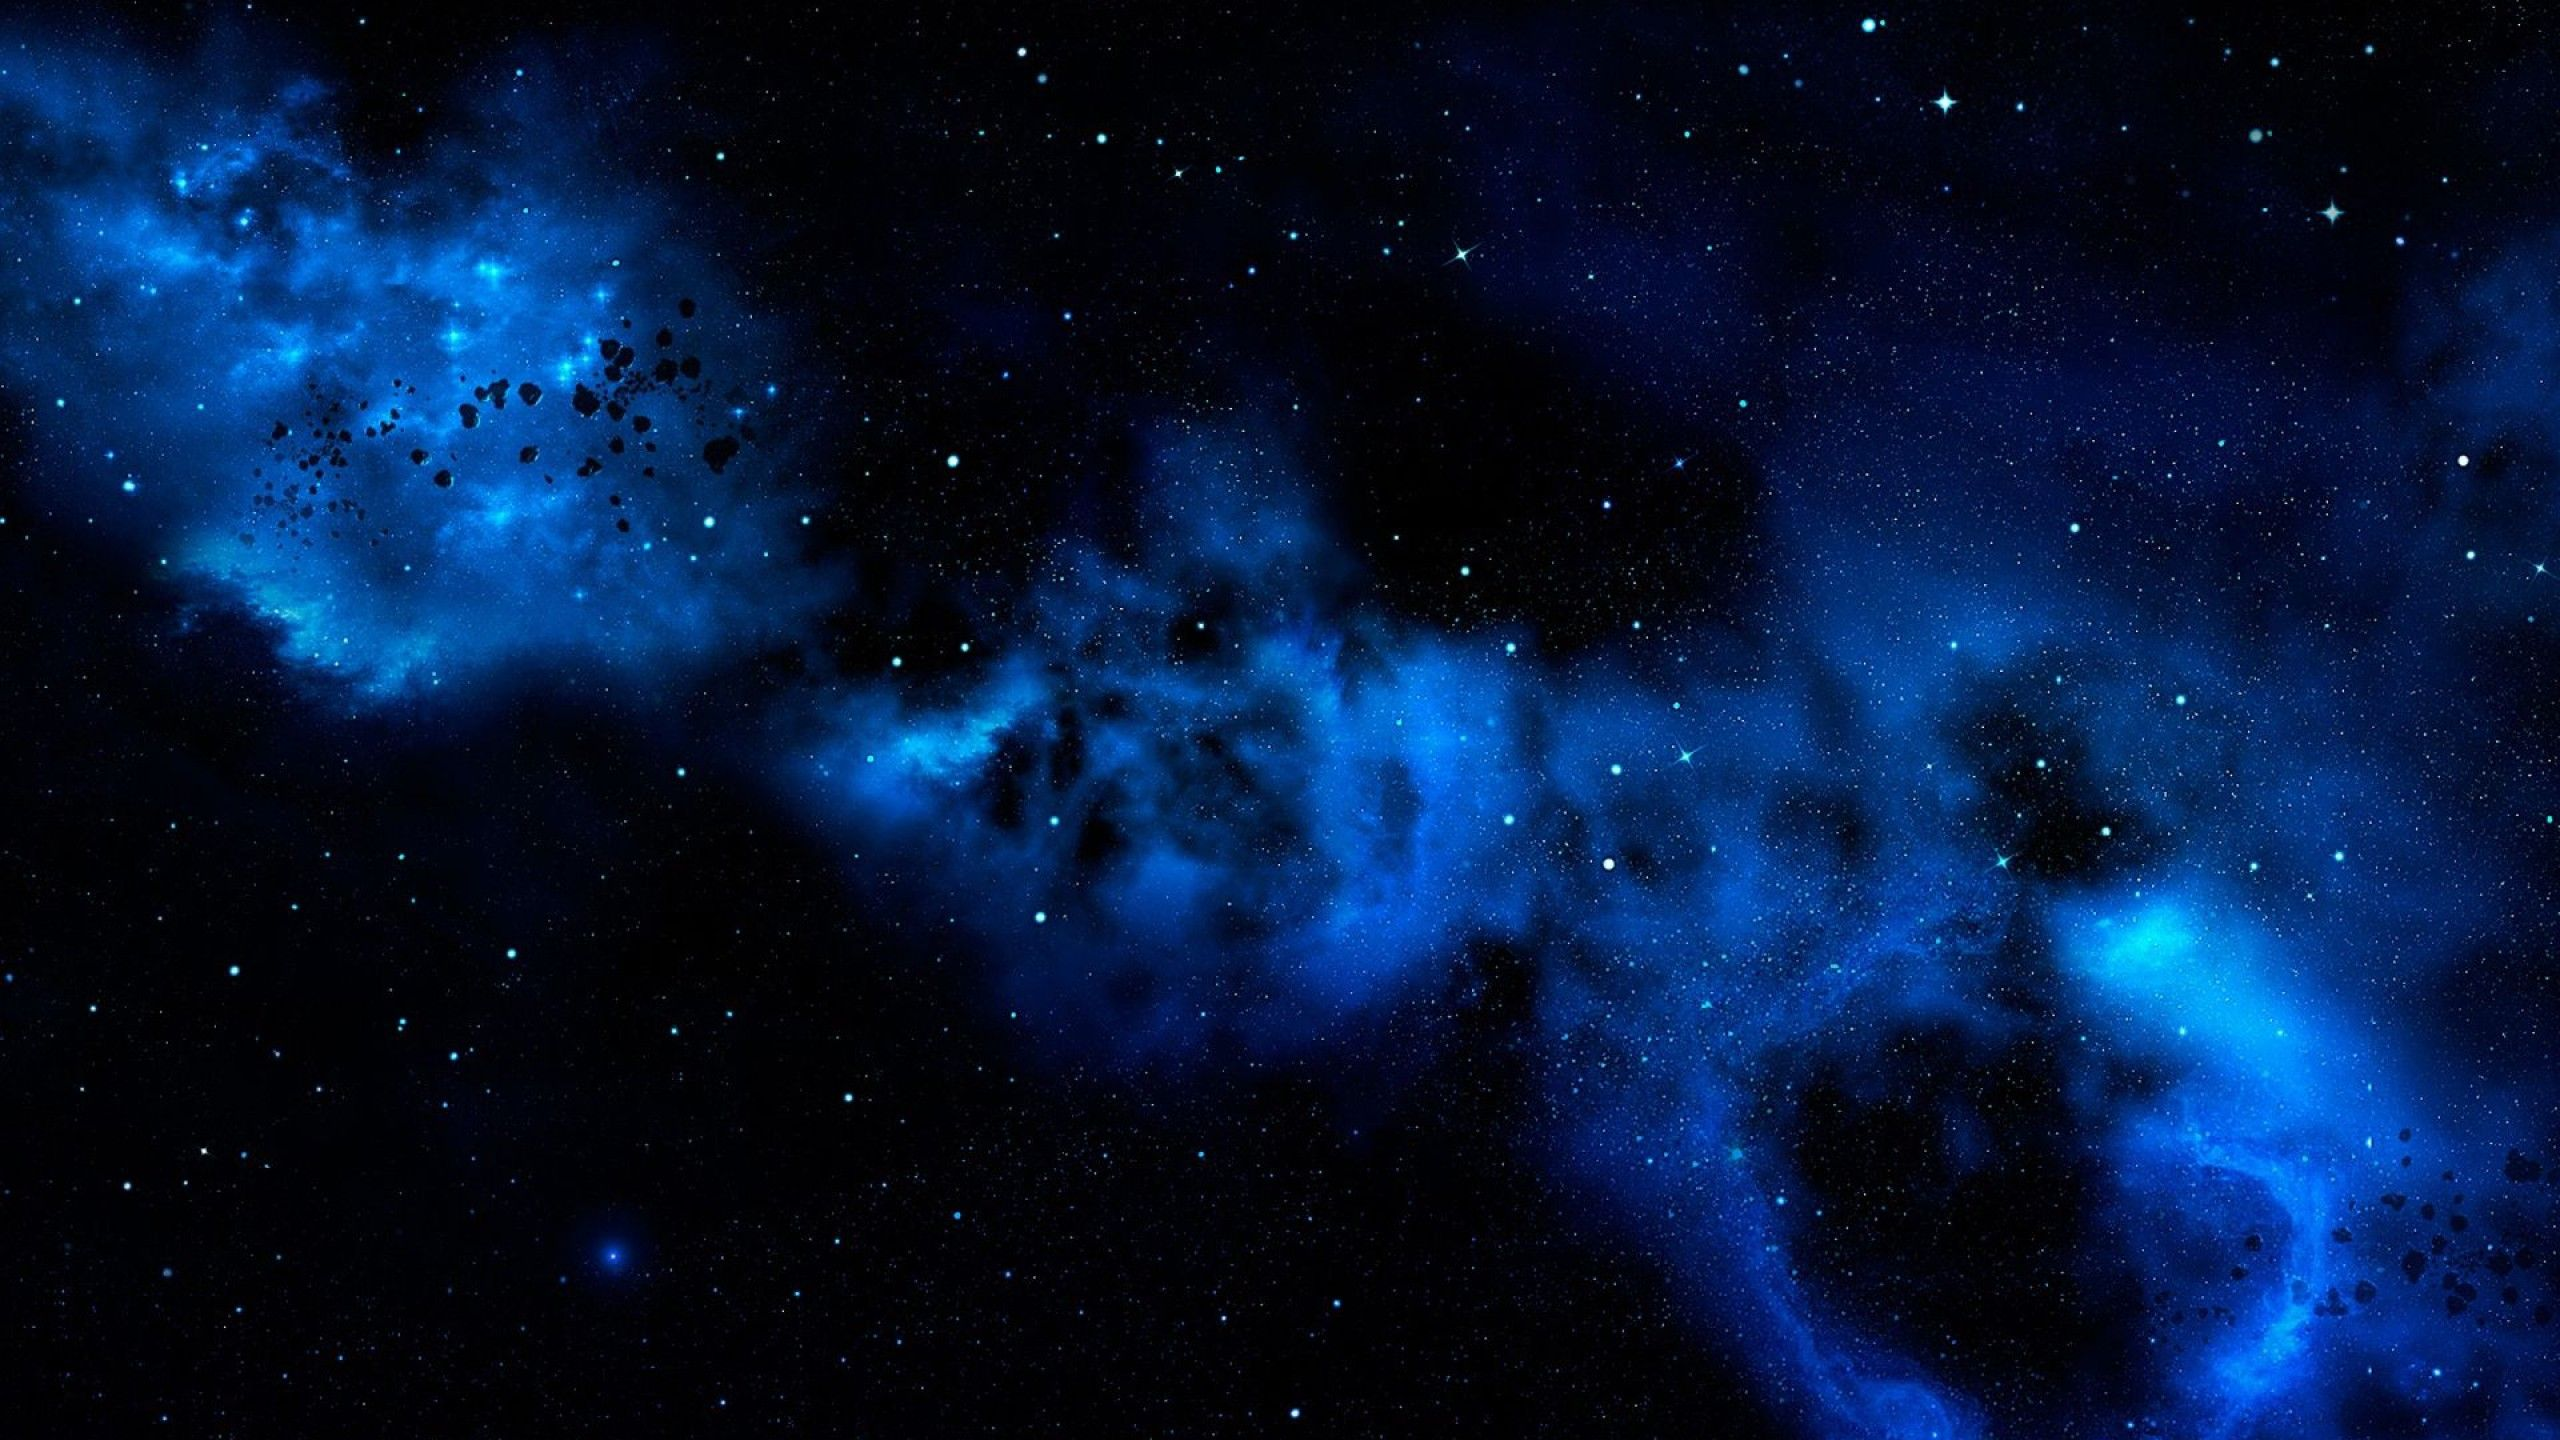 wallpapers galaxy blue nebula hd get 2560x1440 galaxies